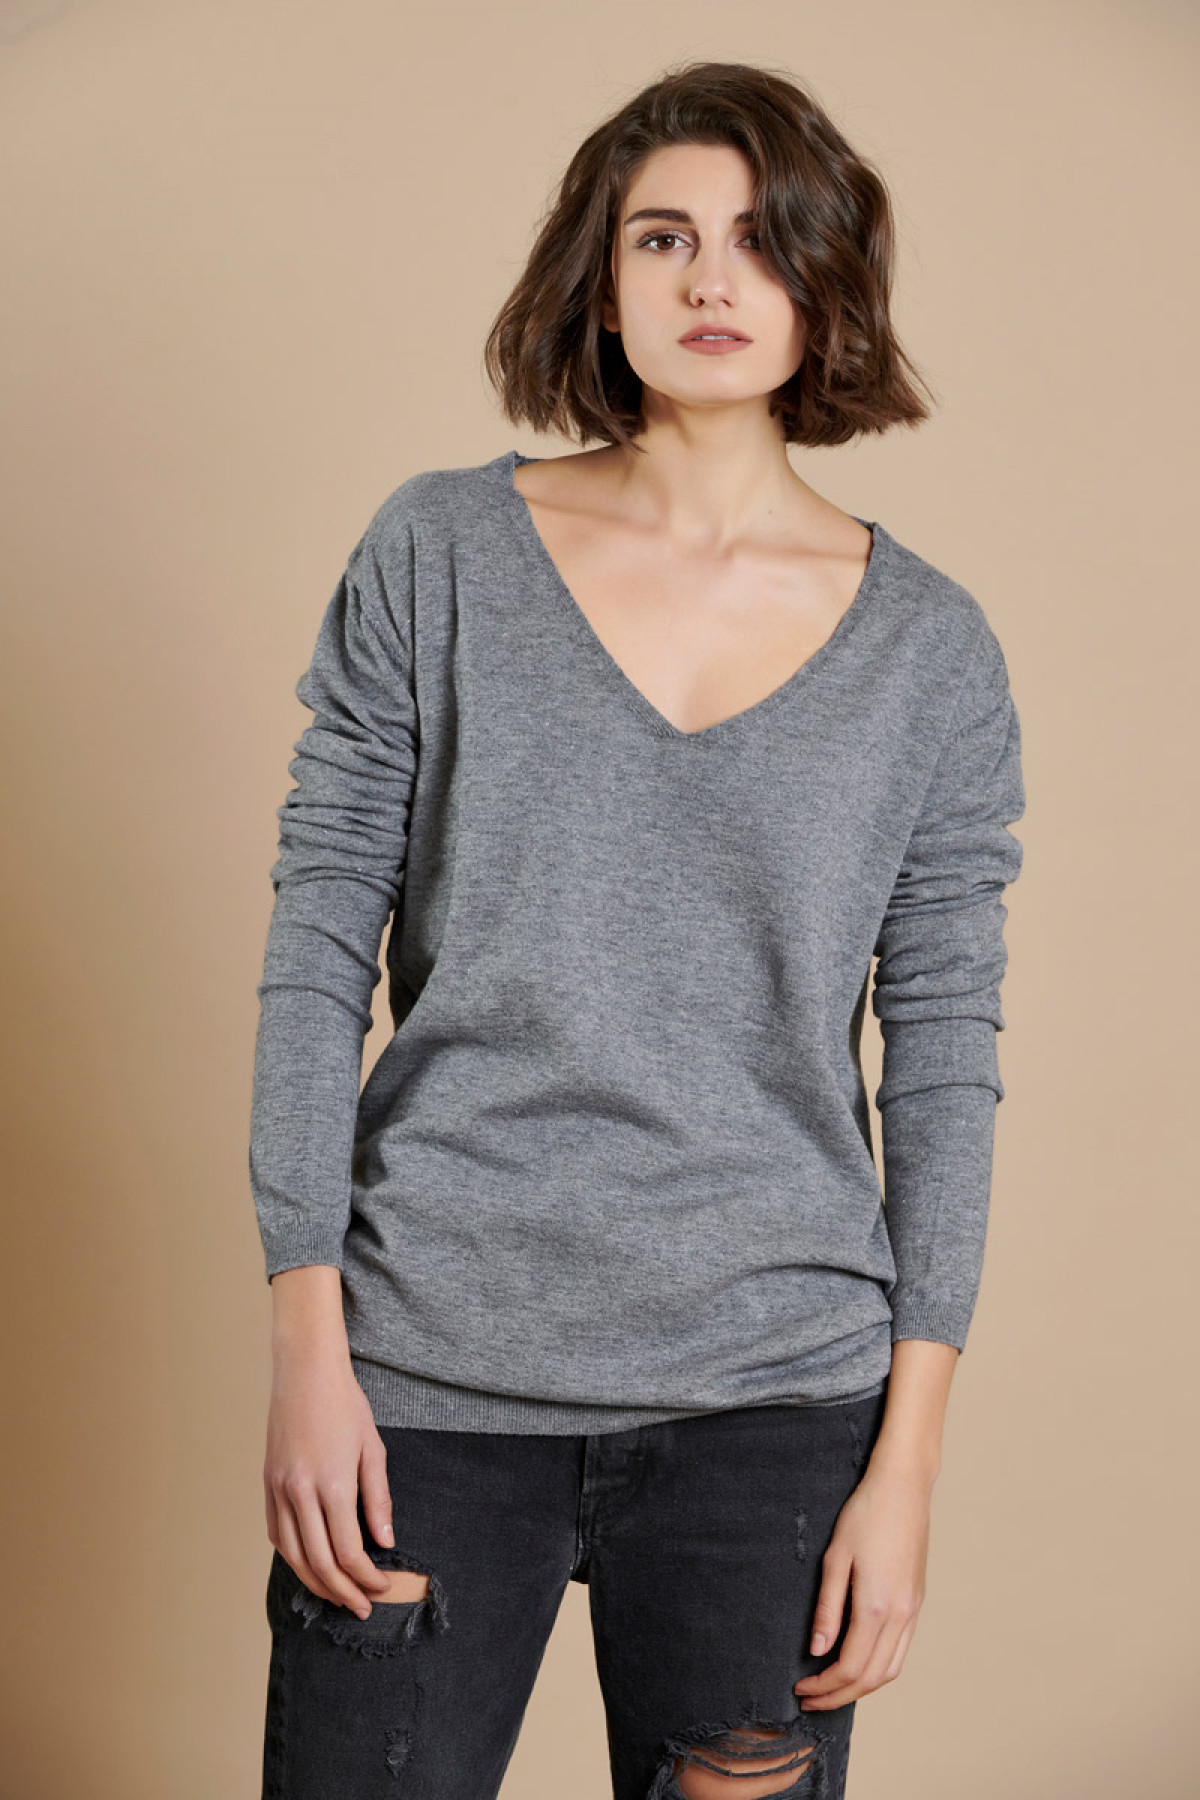 GRAY BASIC V NECK KNIT SWEATER